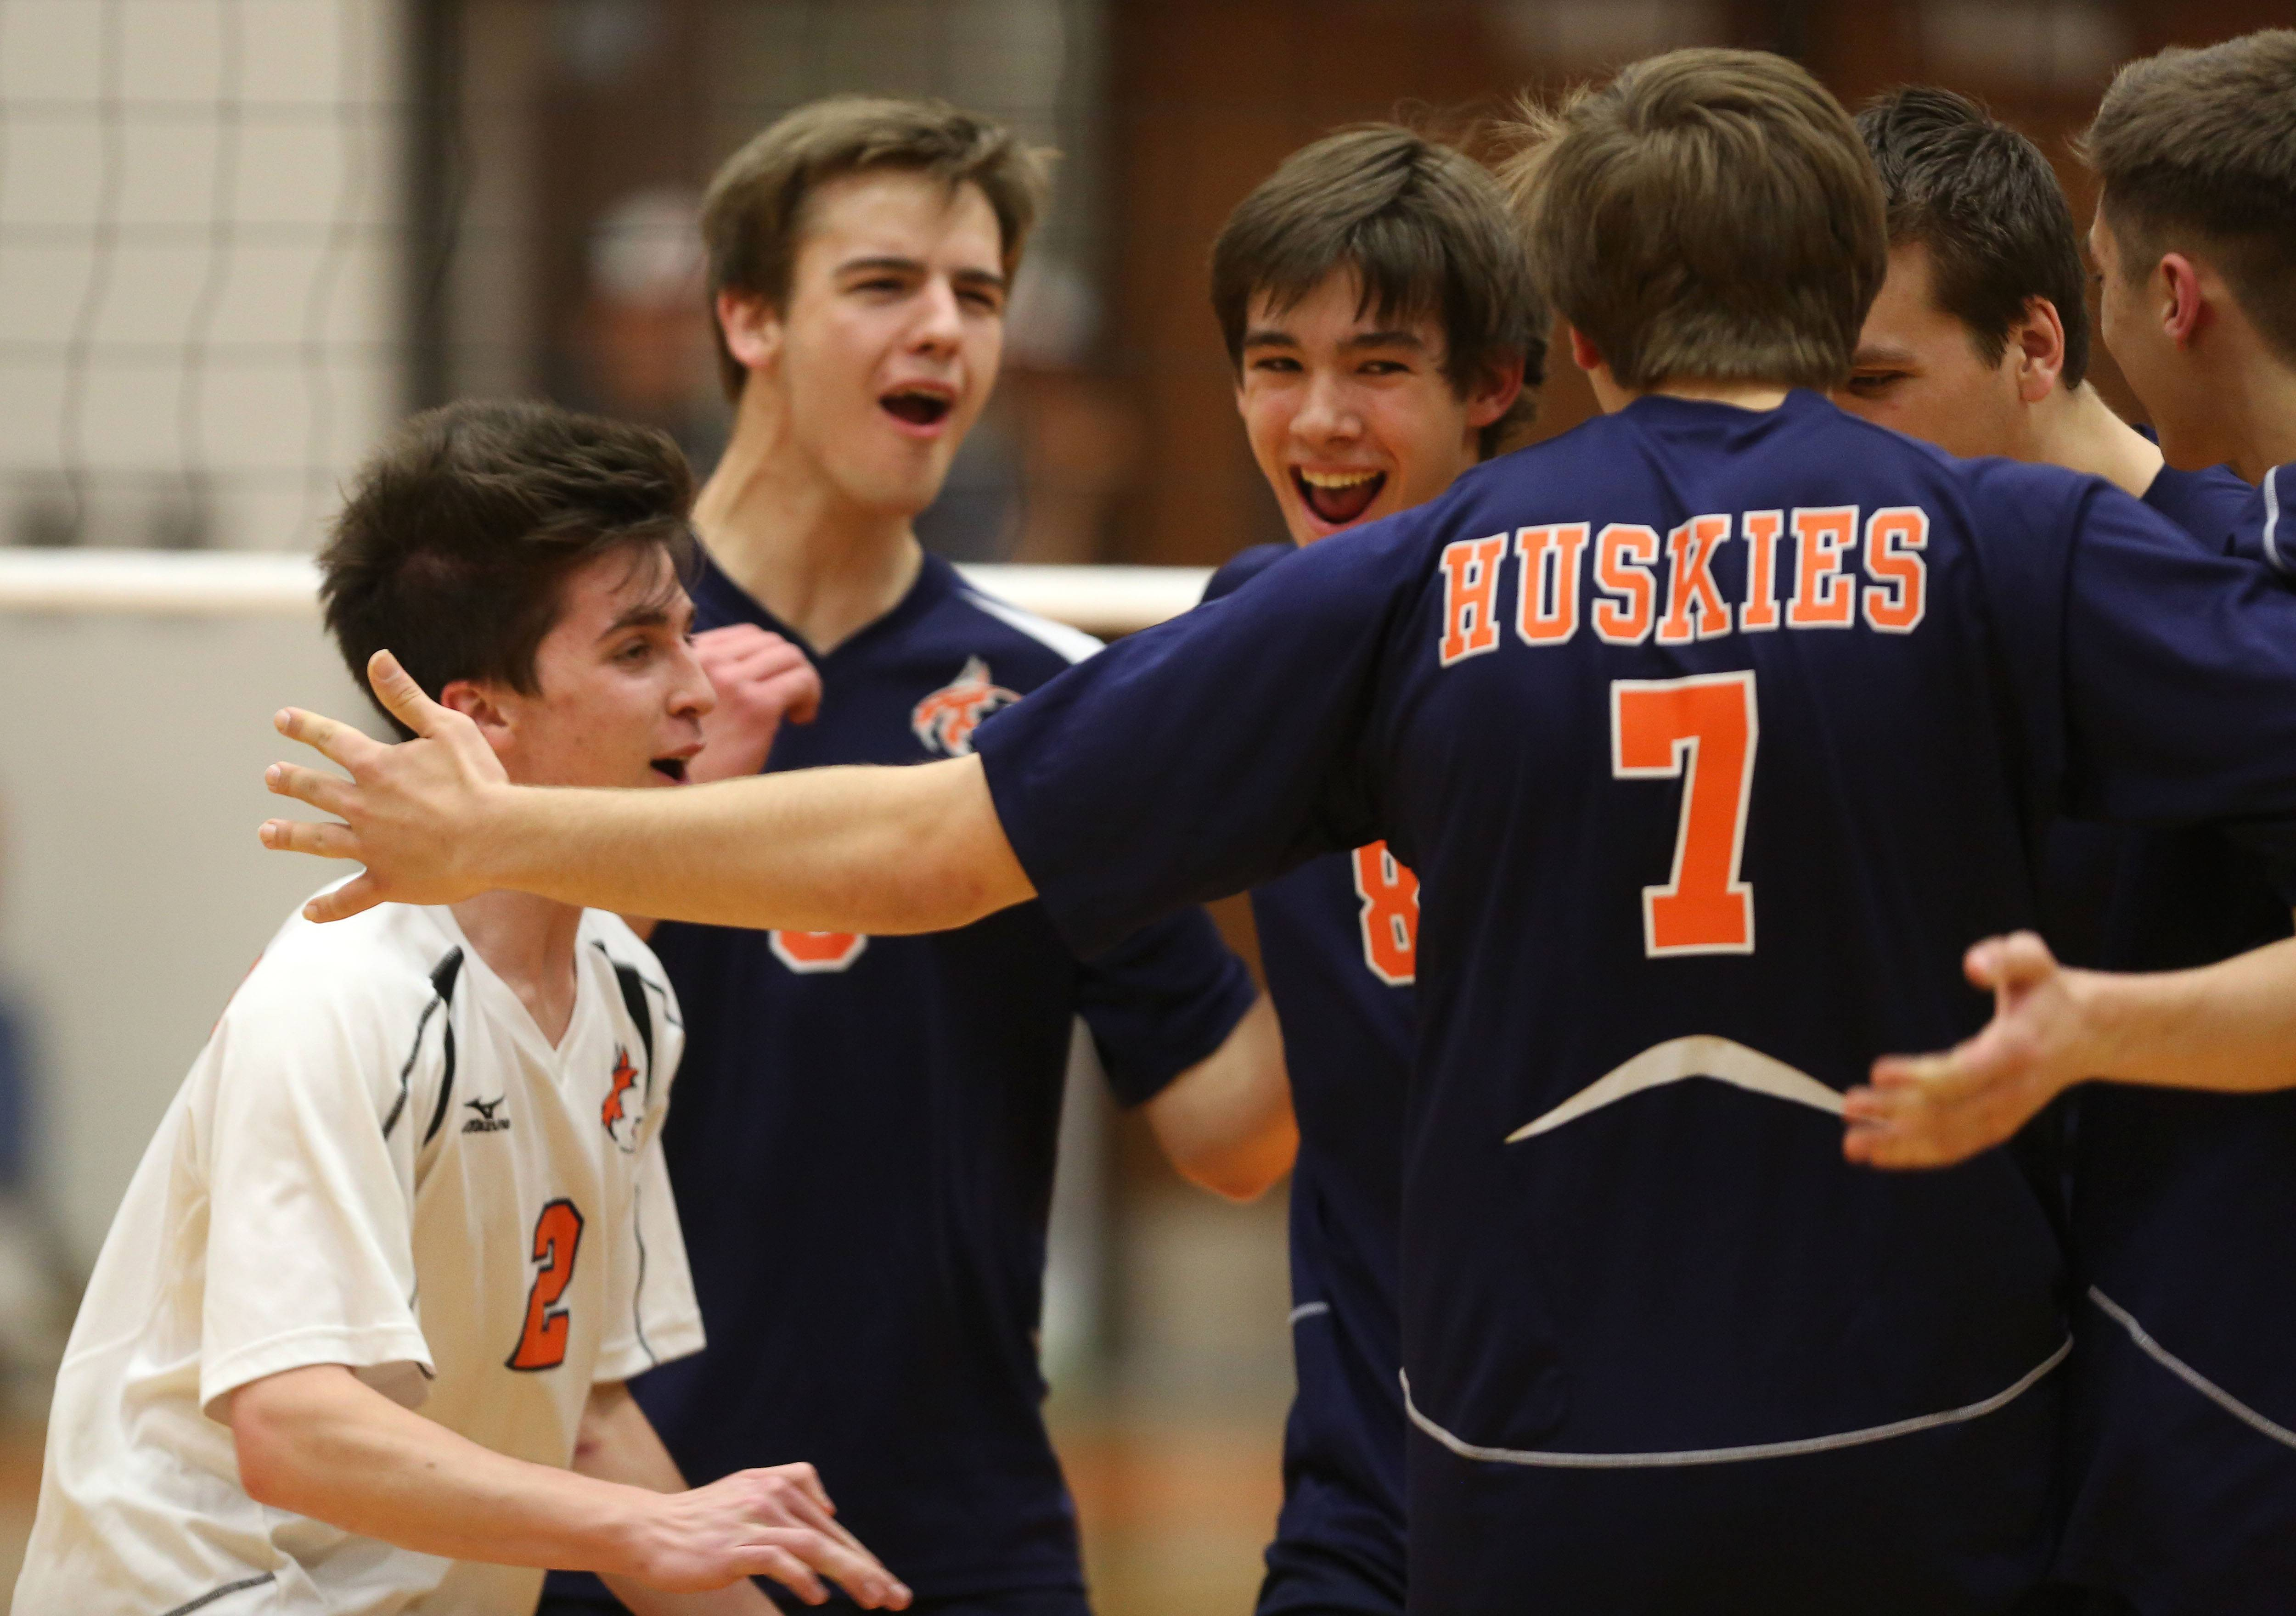 Naperville North's Will Littell, left, celebrates a point against Wheaton Warrenville South.